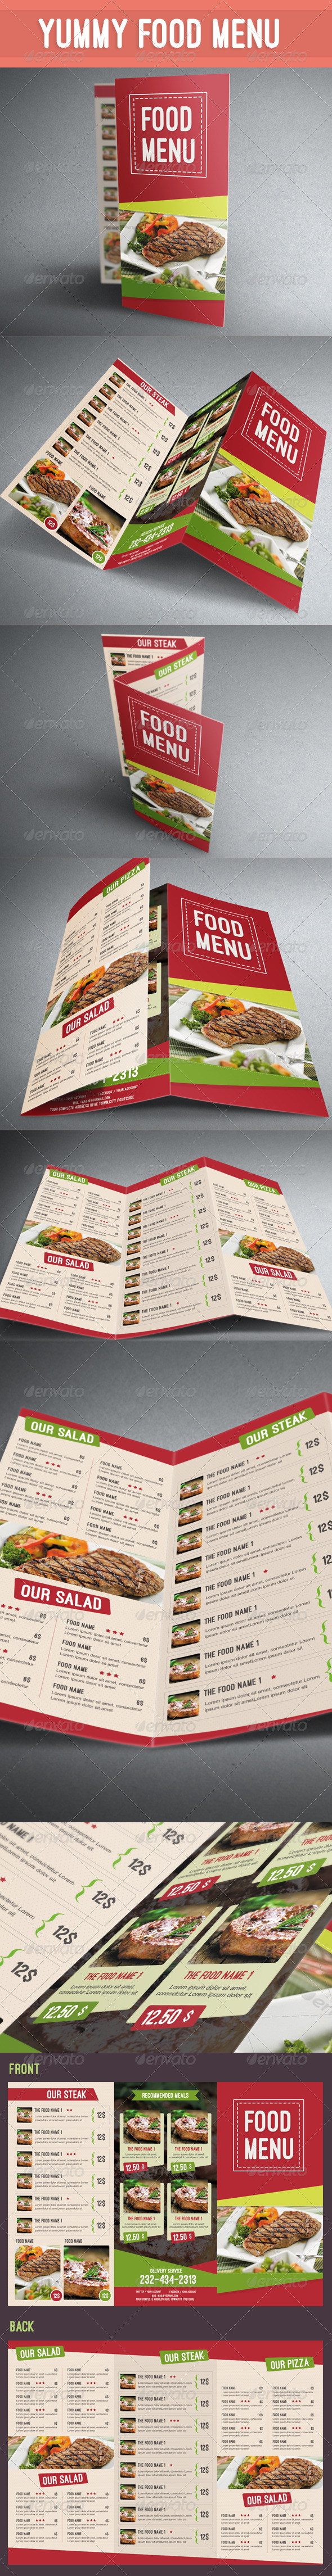 GraphicRiver Yummy Food Menu 8188682